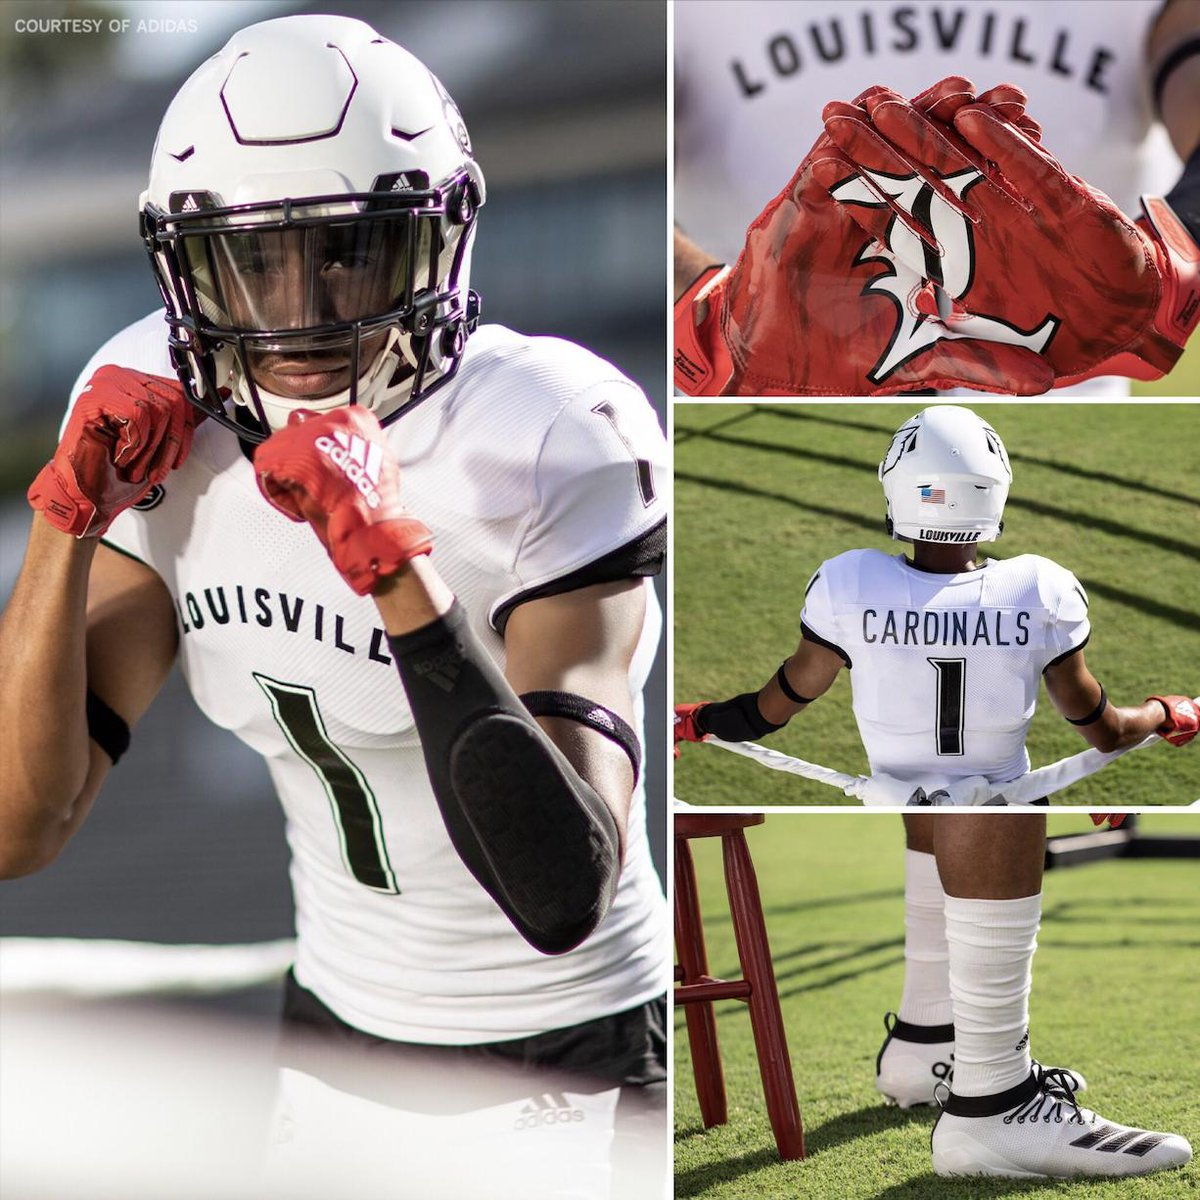 From the boxing ring  the football field ...  @UofLFootball's new adidas alternate uniforms are taking inspiration from Louisville native, Muhammad Ali  <br>http://pic.twitter.com/KJZs9tVlde